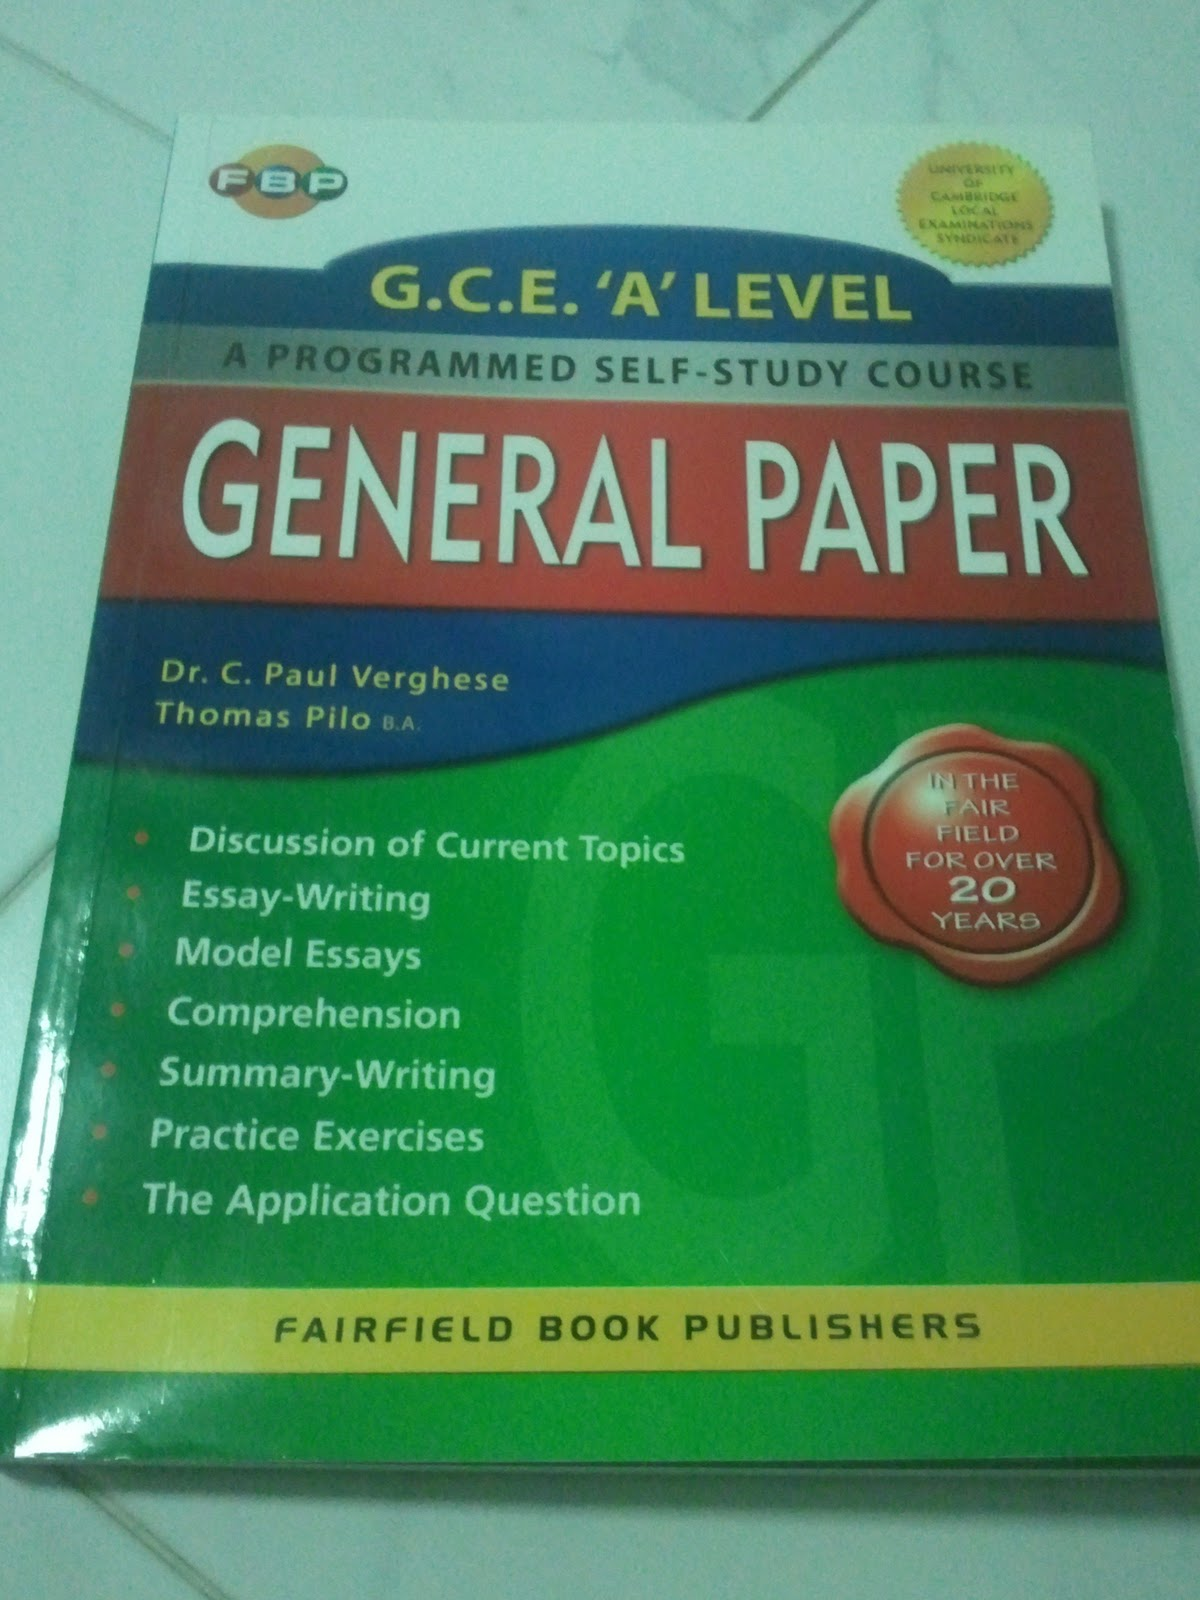 books notes for at affordable rates  gce a level general paper a programmed self study course